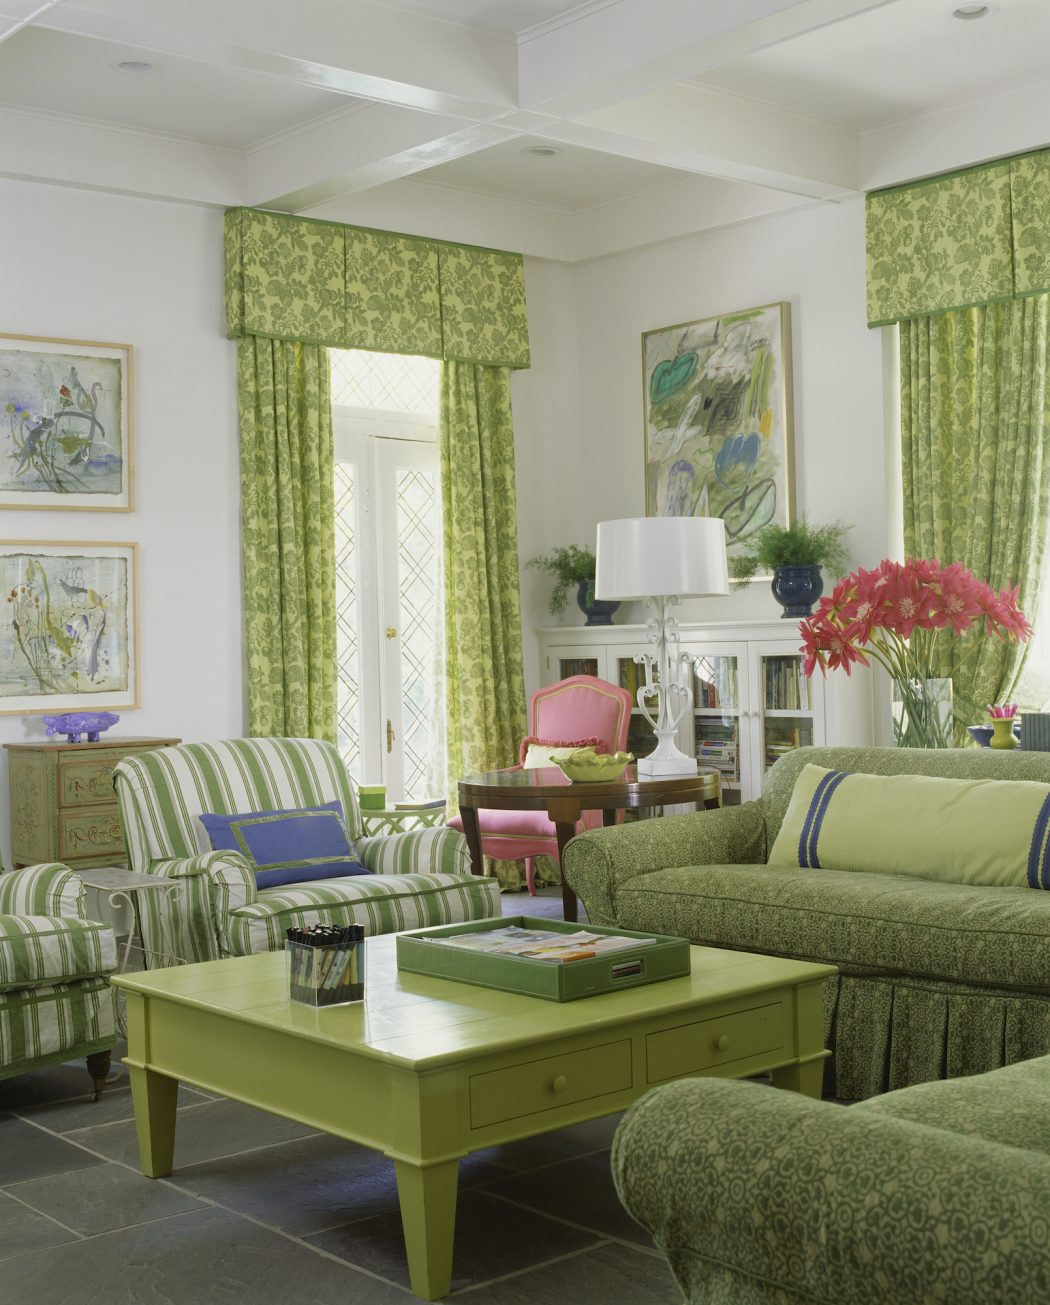 home-trends-curtain-valance-1490208381 5 Outdated Home Decor Trends That Are Coming Again in 2020